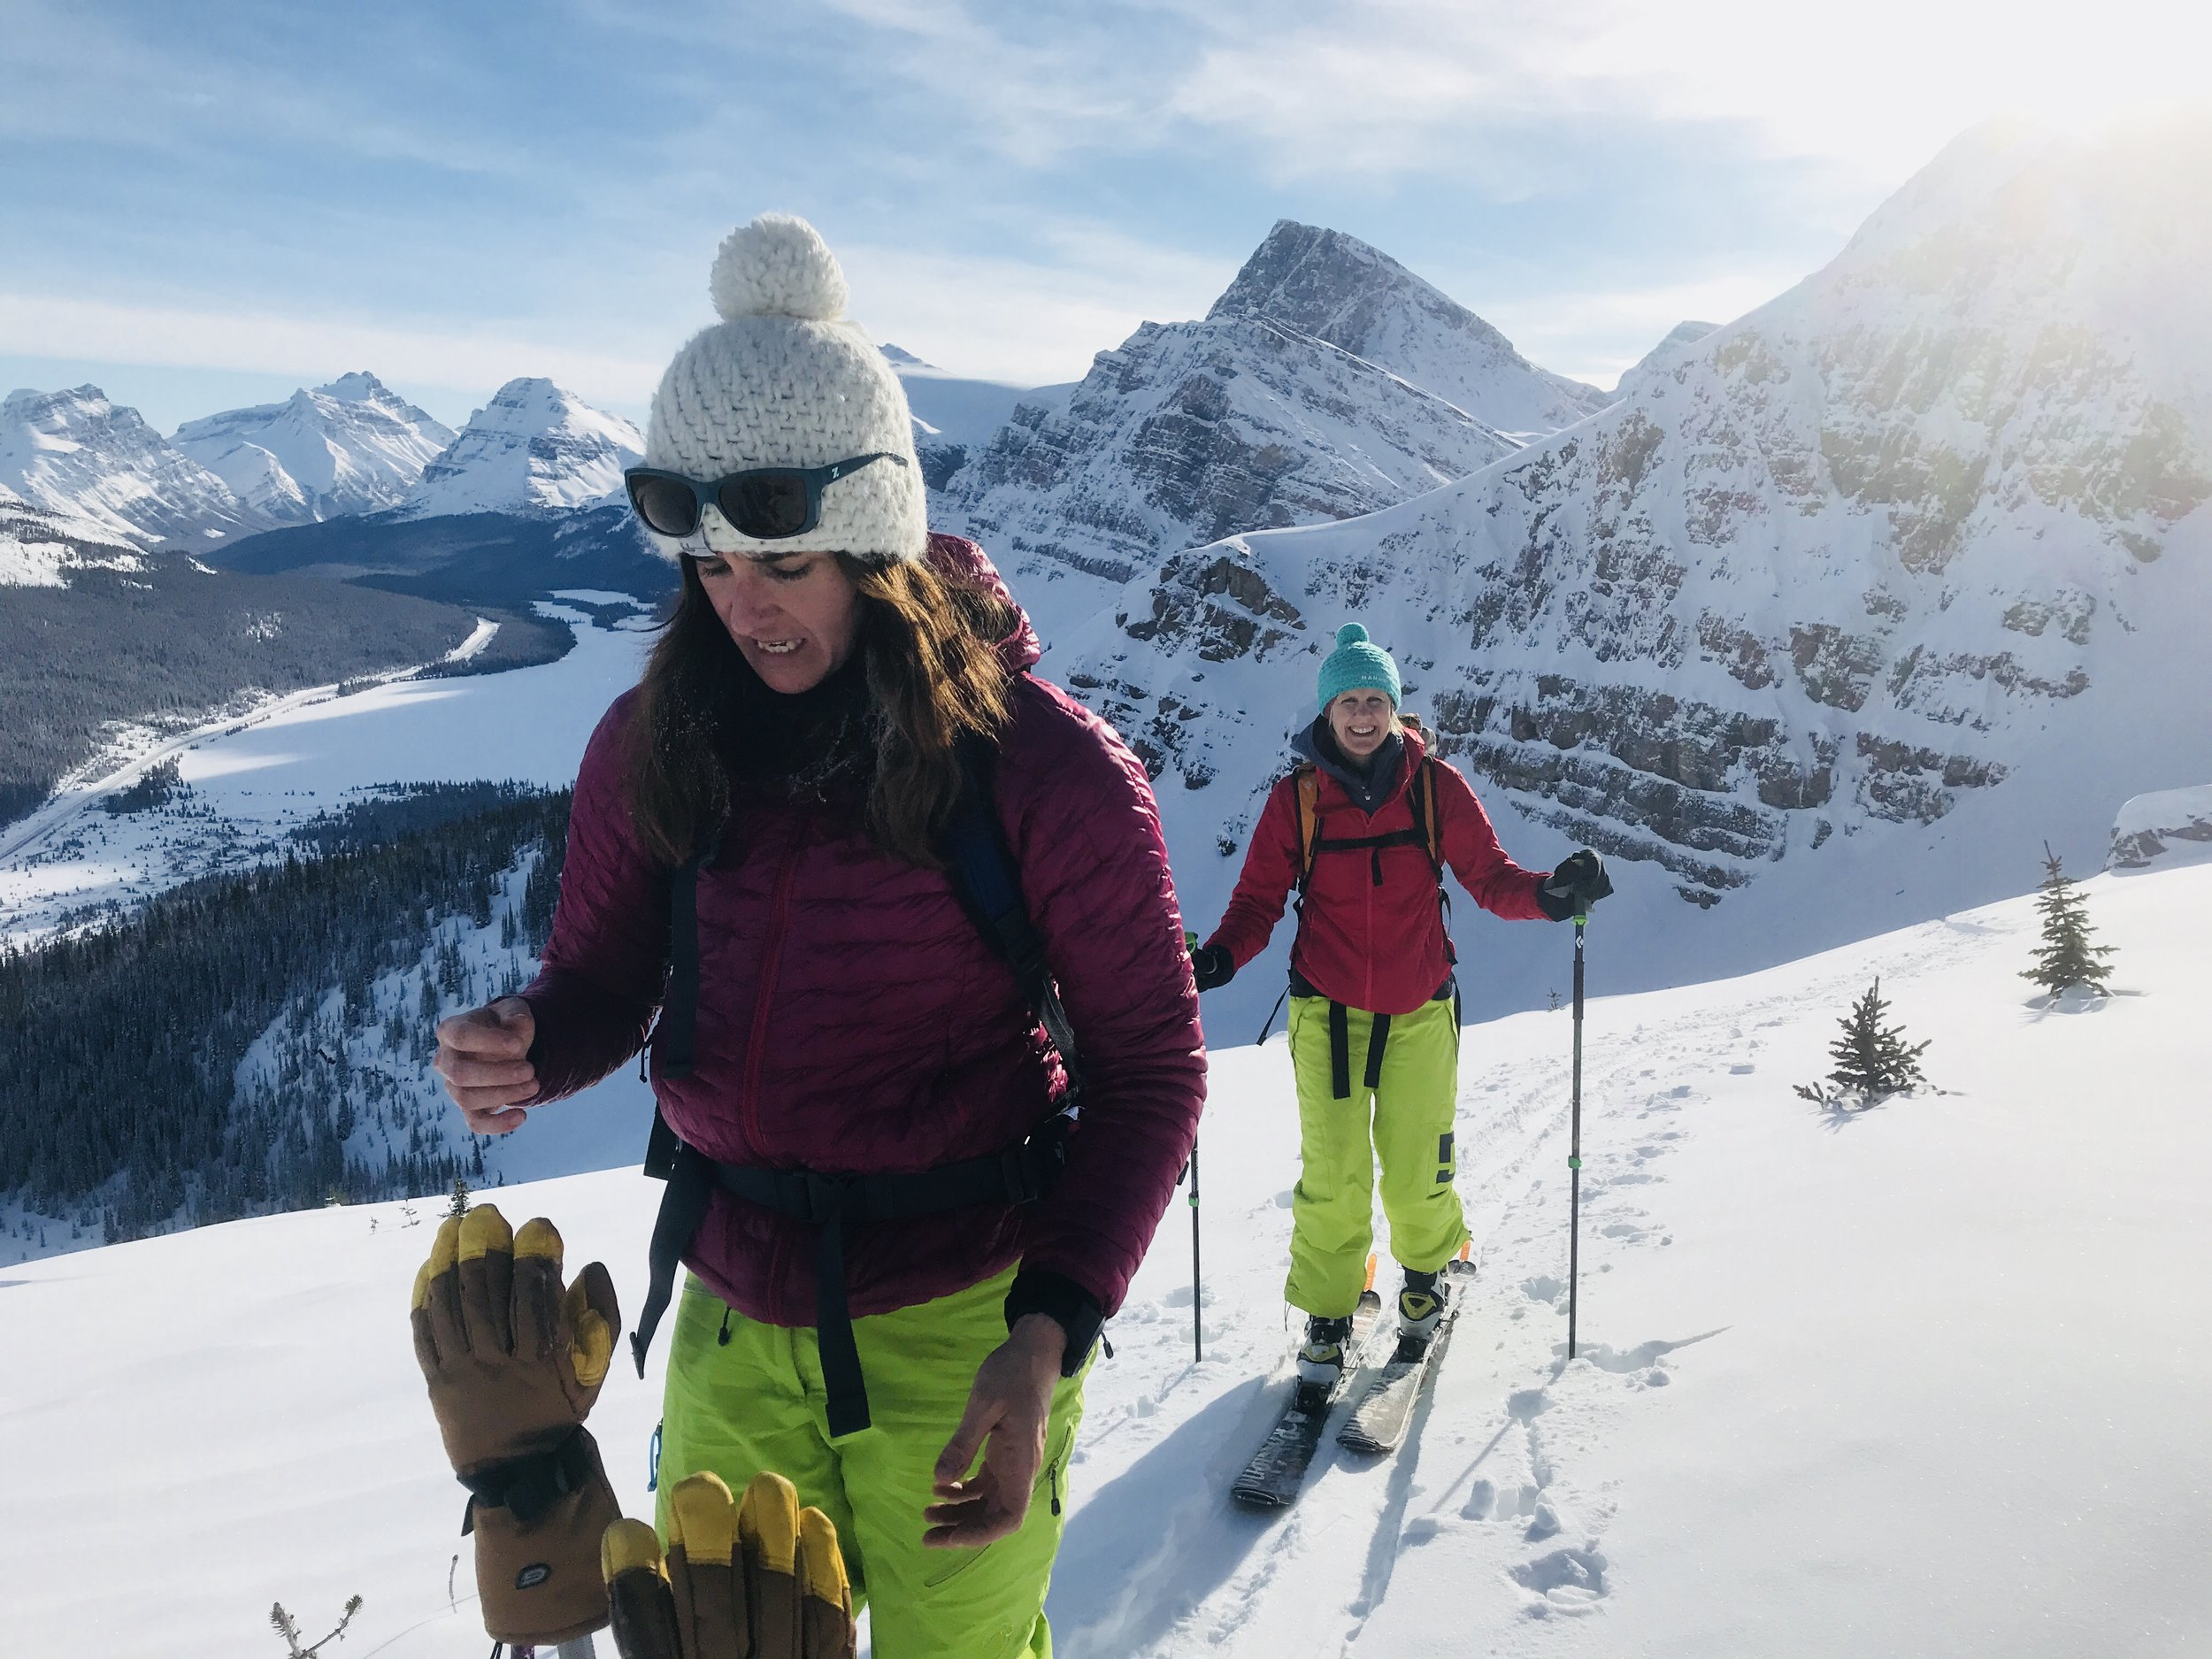 Ski touring on the Icefields Parkway with Emily & James